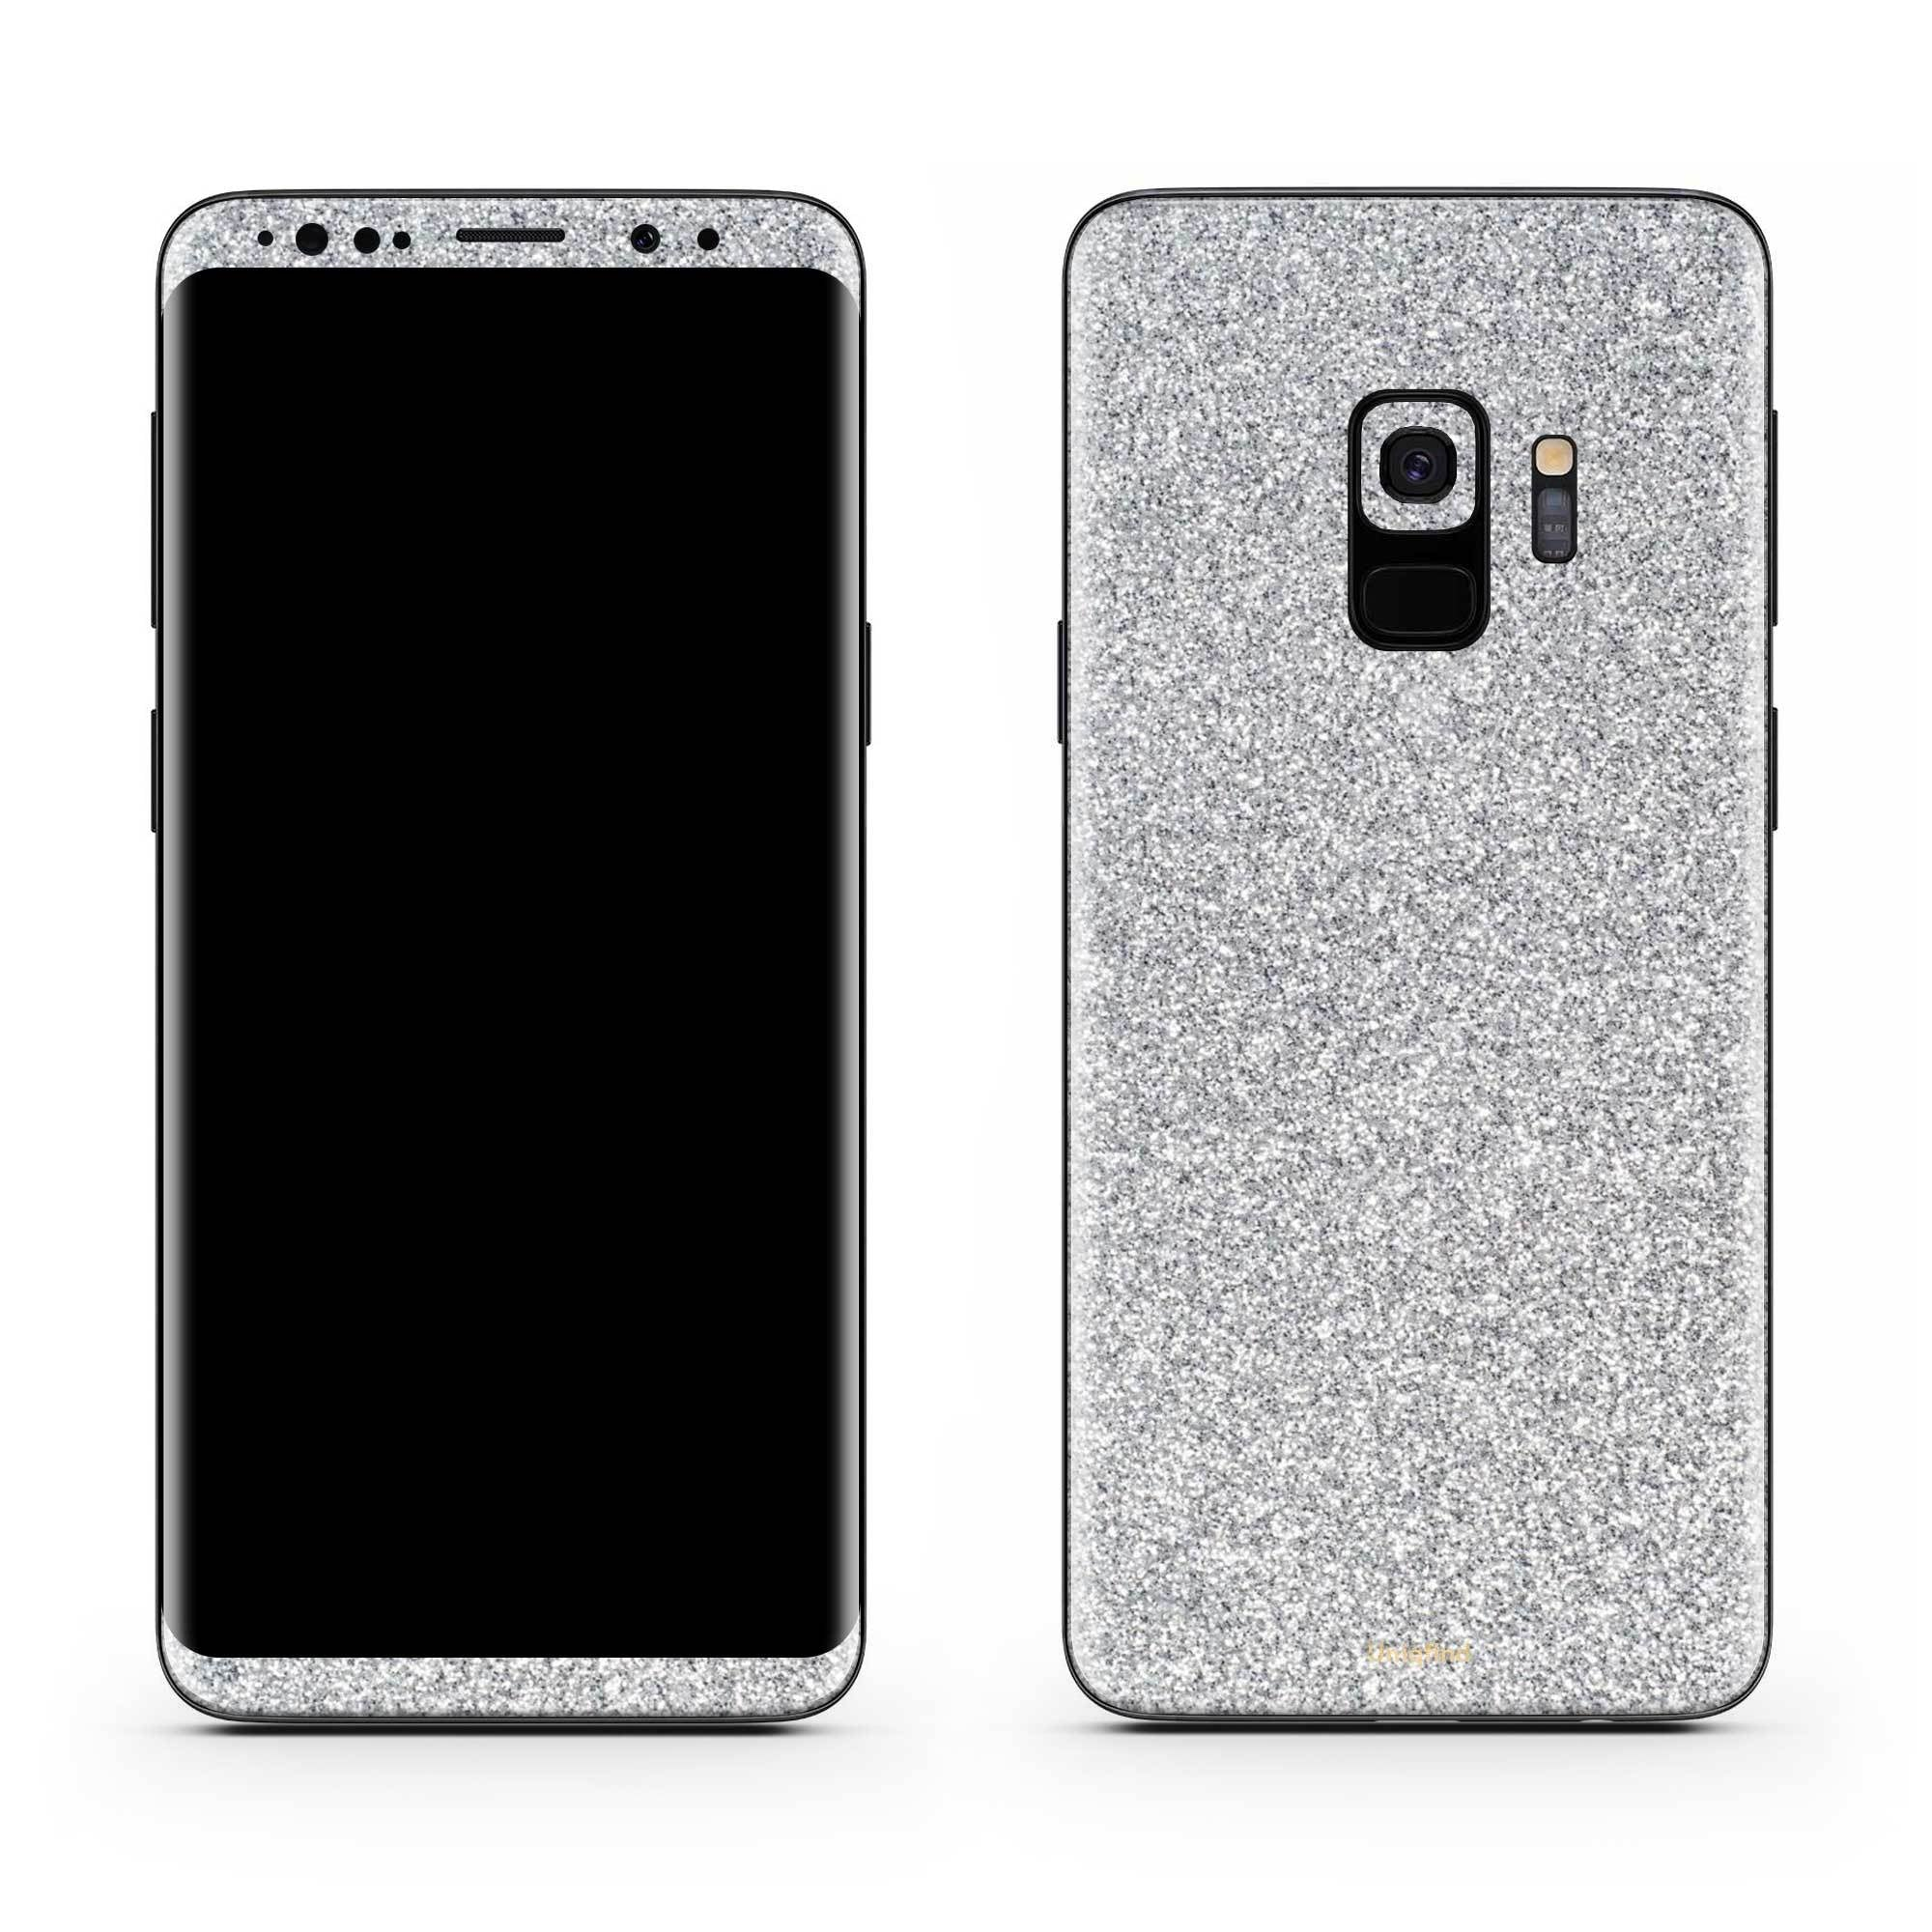 Blanc Glitter Galaxy S9 Plus Skin + Case